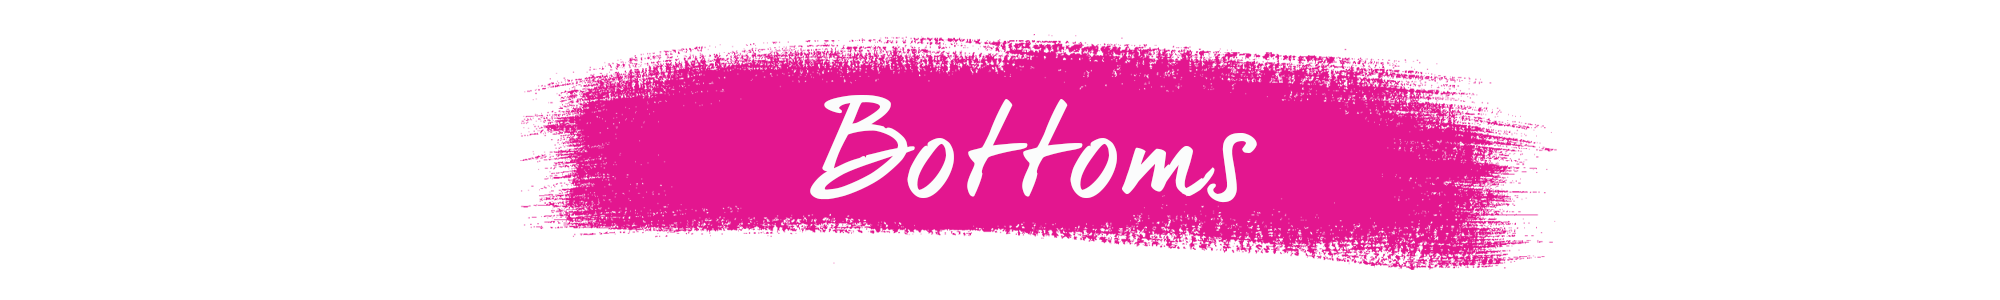 Bottoms Banner